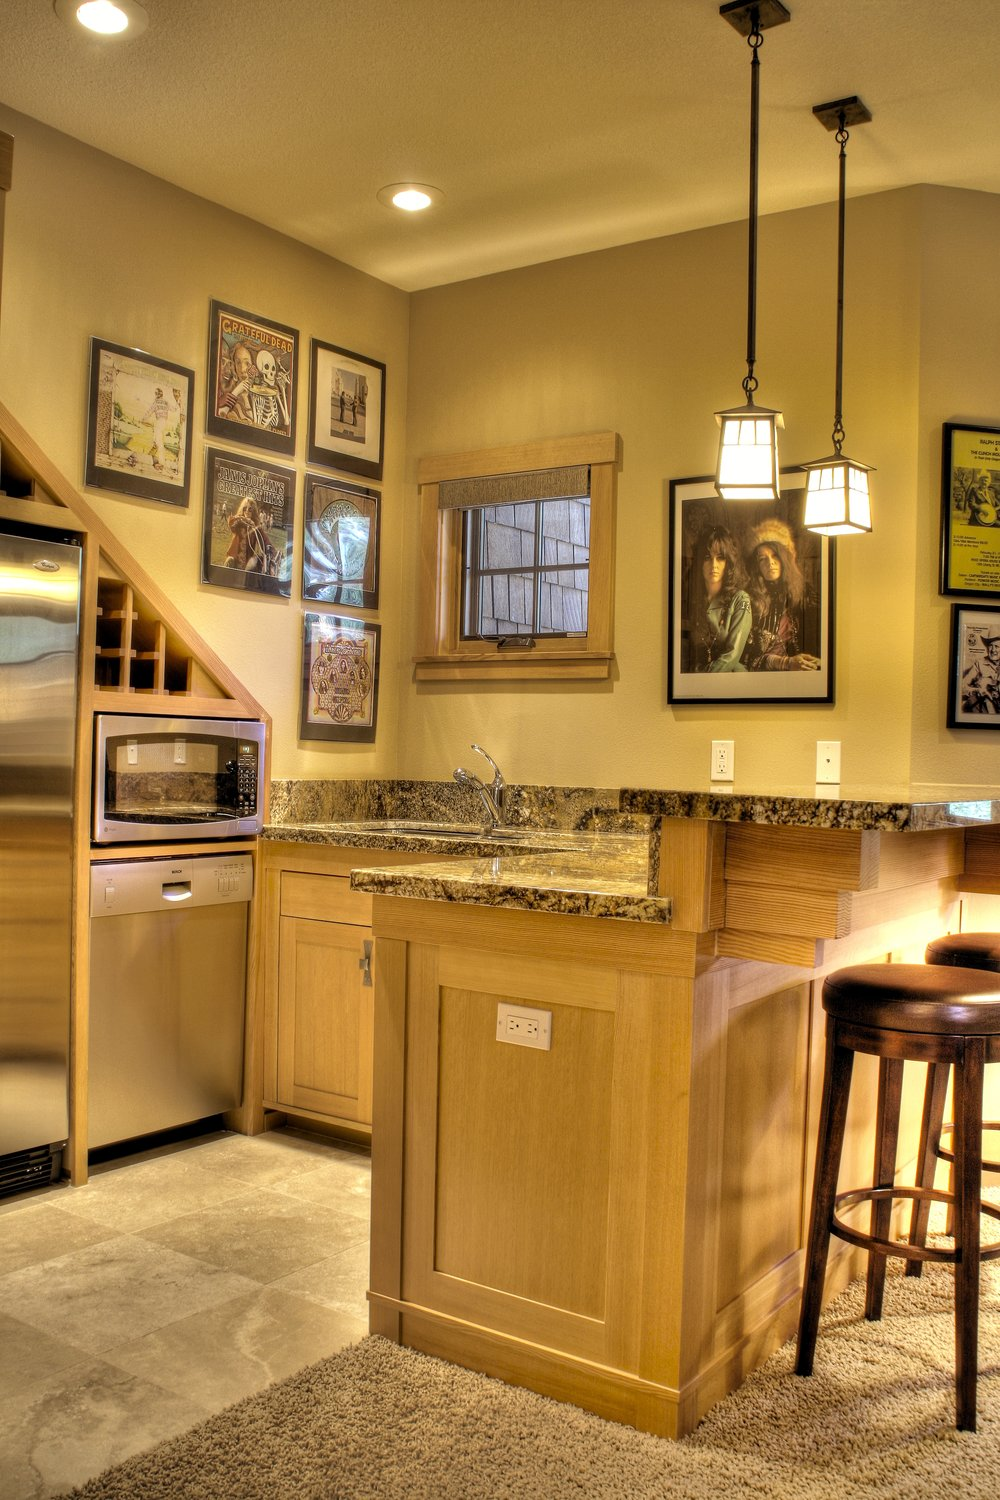 12 Media Room Kitchen - Copy.jpg